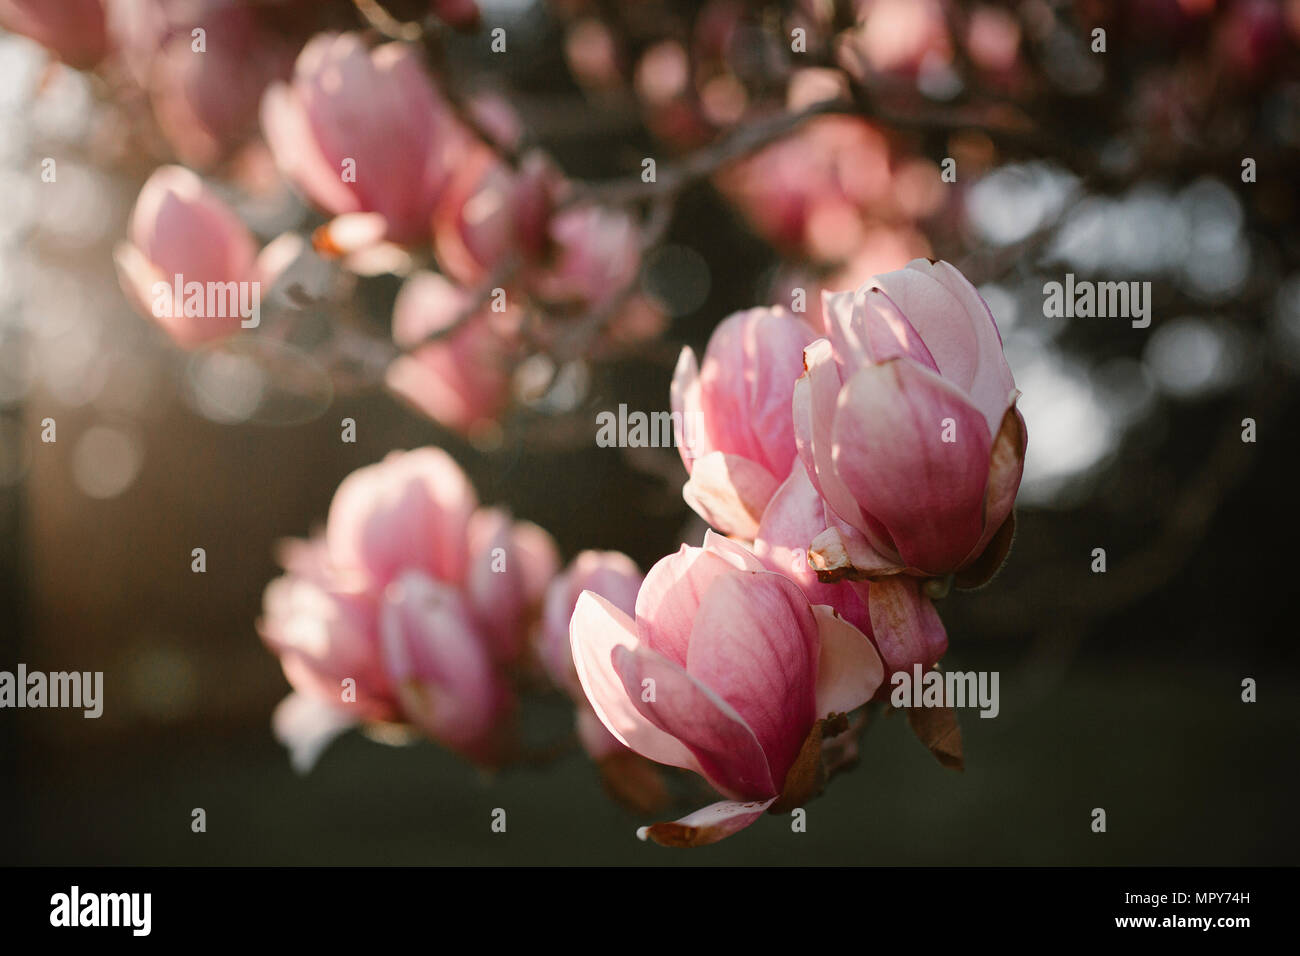 Close-up of flowers growing on tree - Stock Image